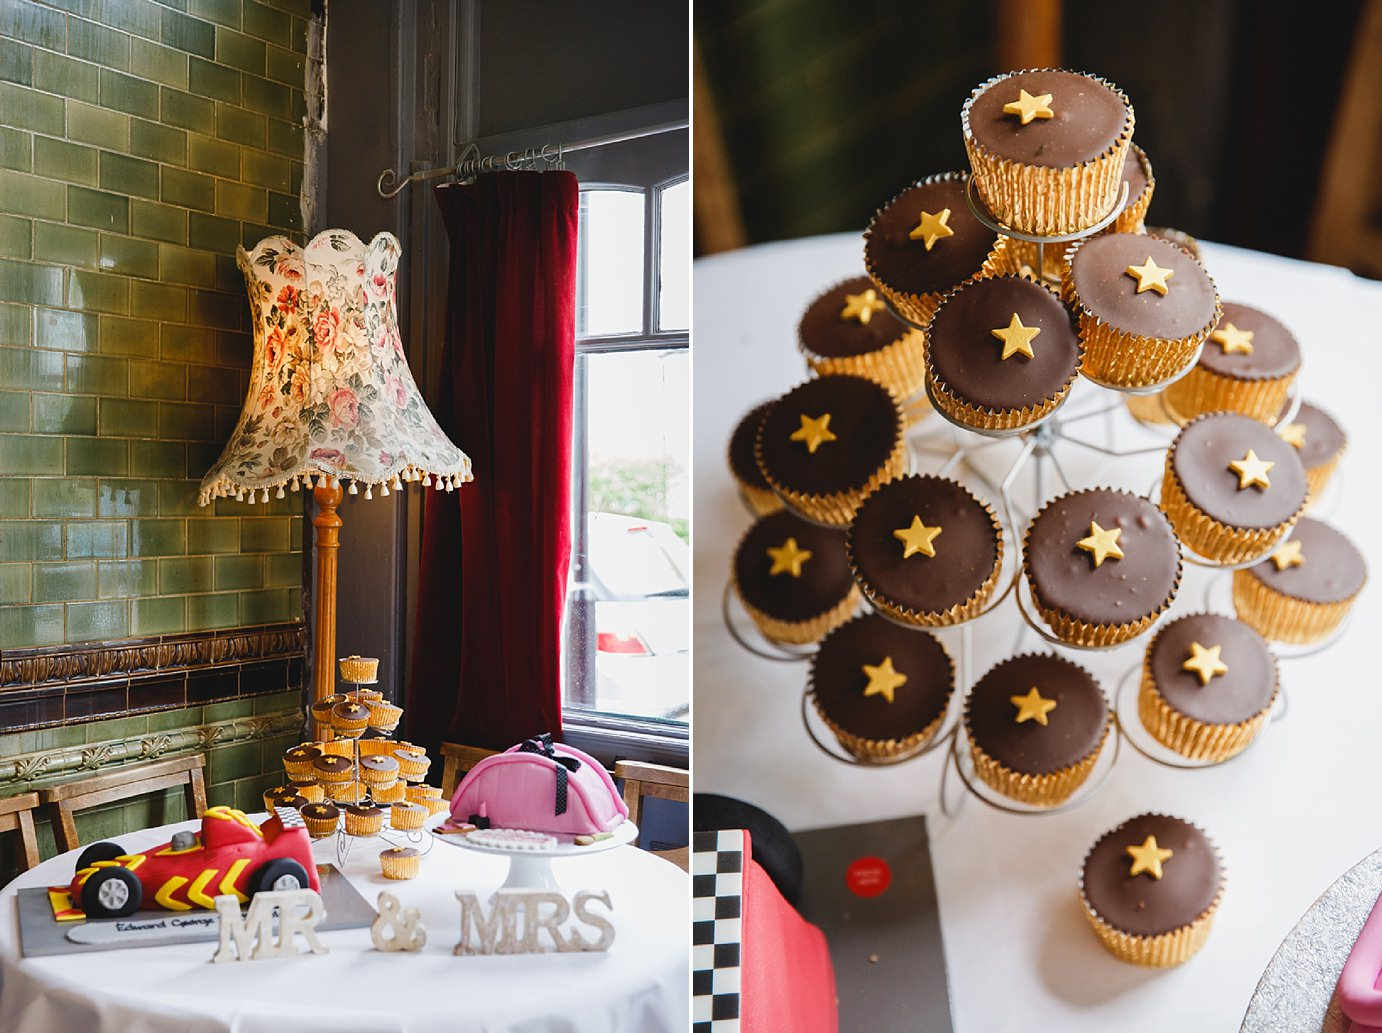 Londesborough pub wedding photography wedding cakes